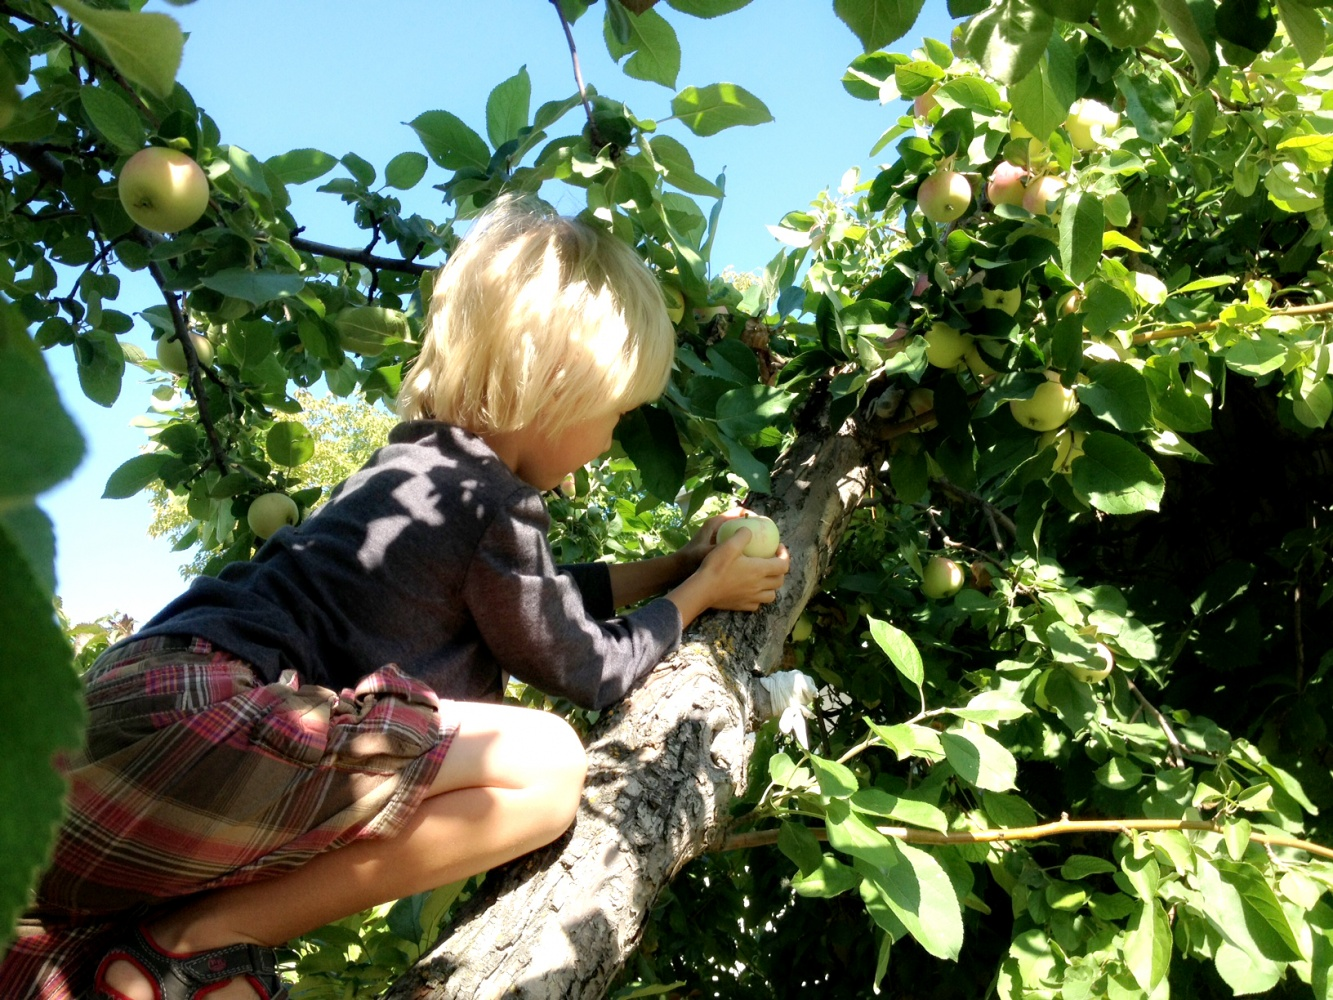 cohen harvesting apples